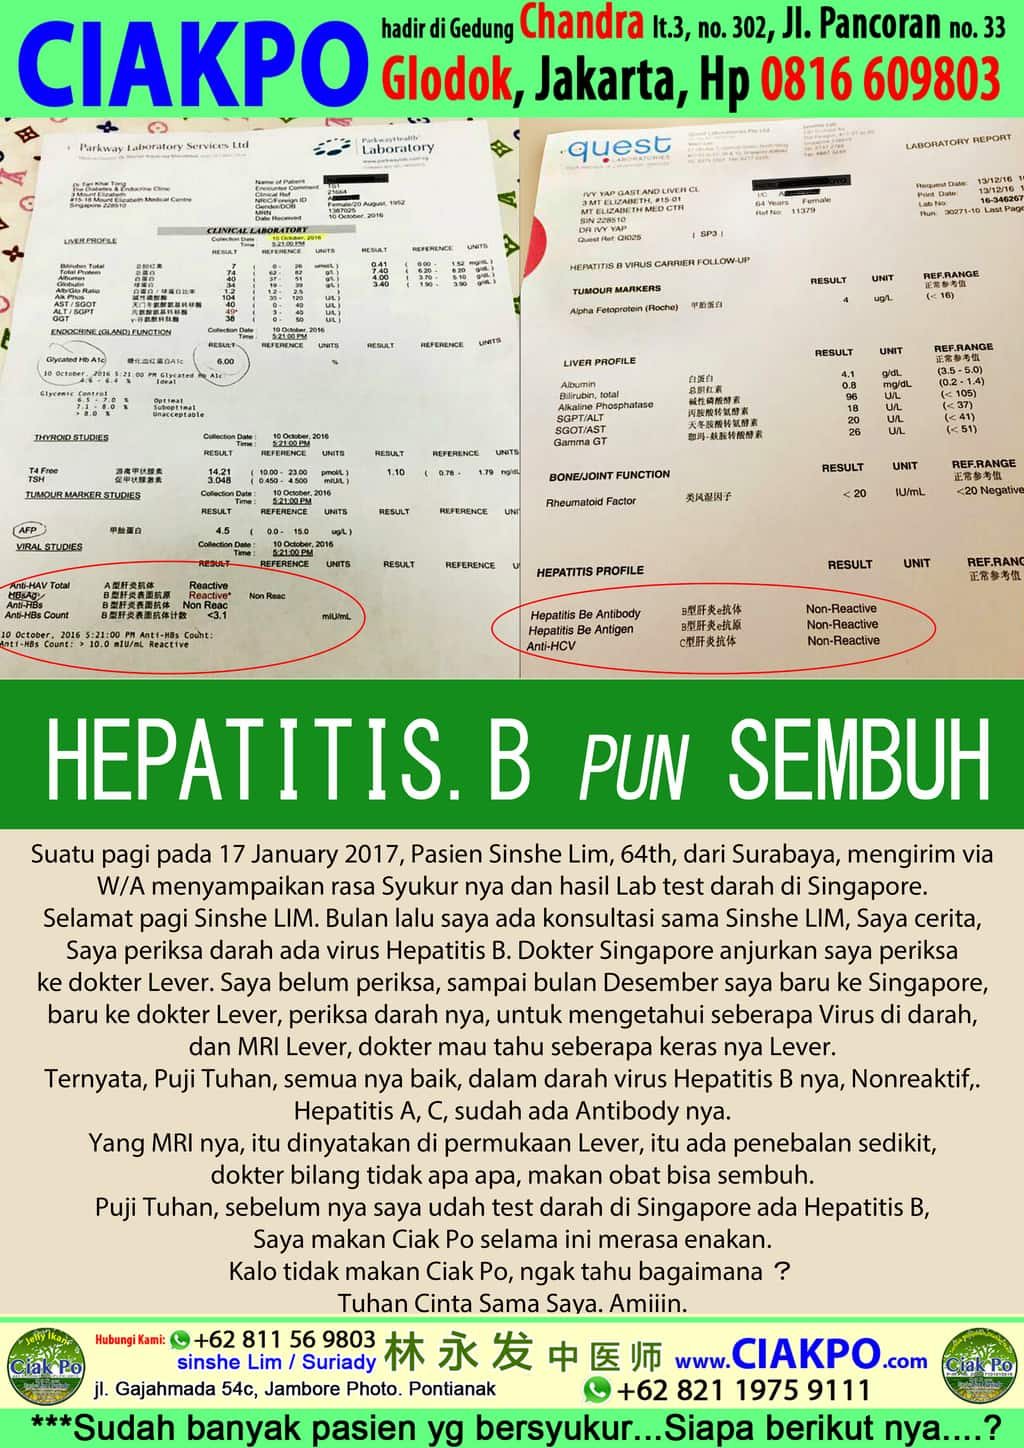 Hepatitis B Sembuh